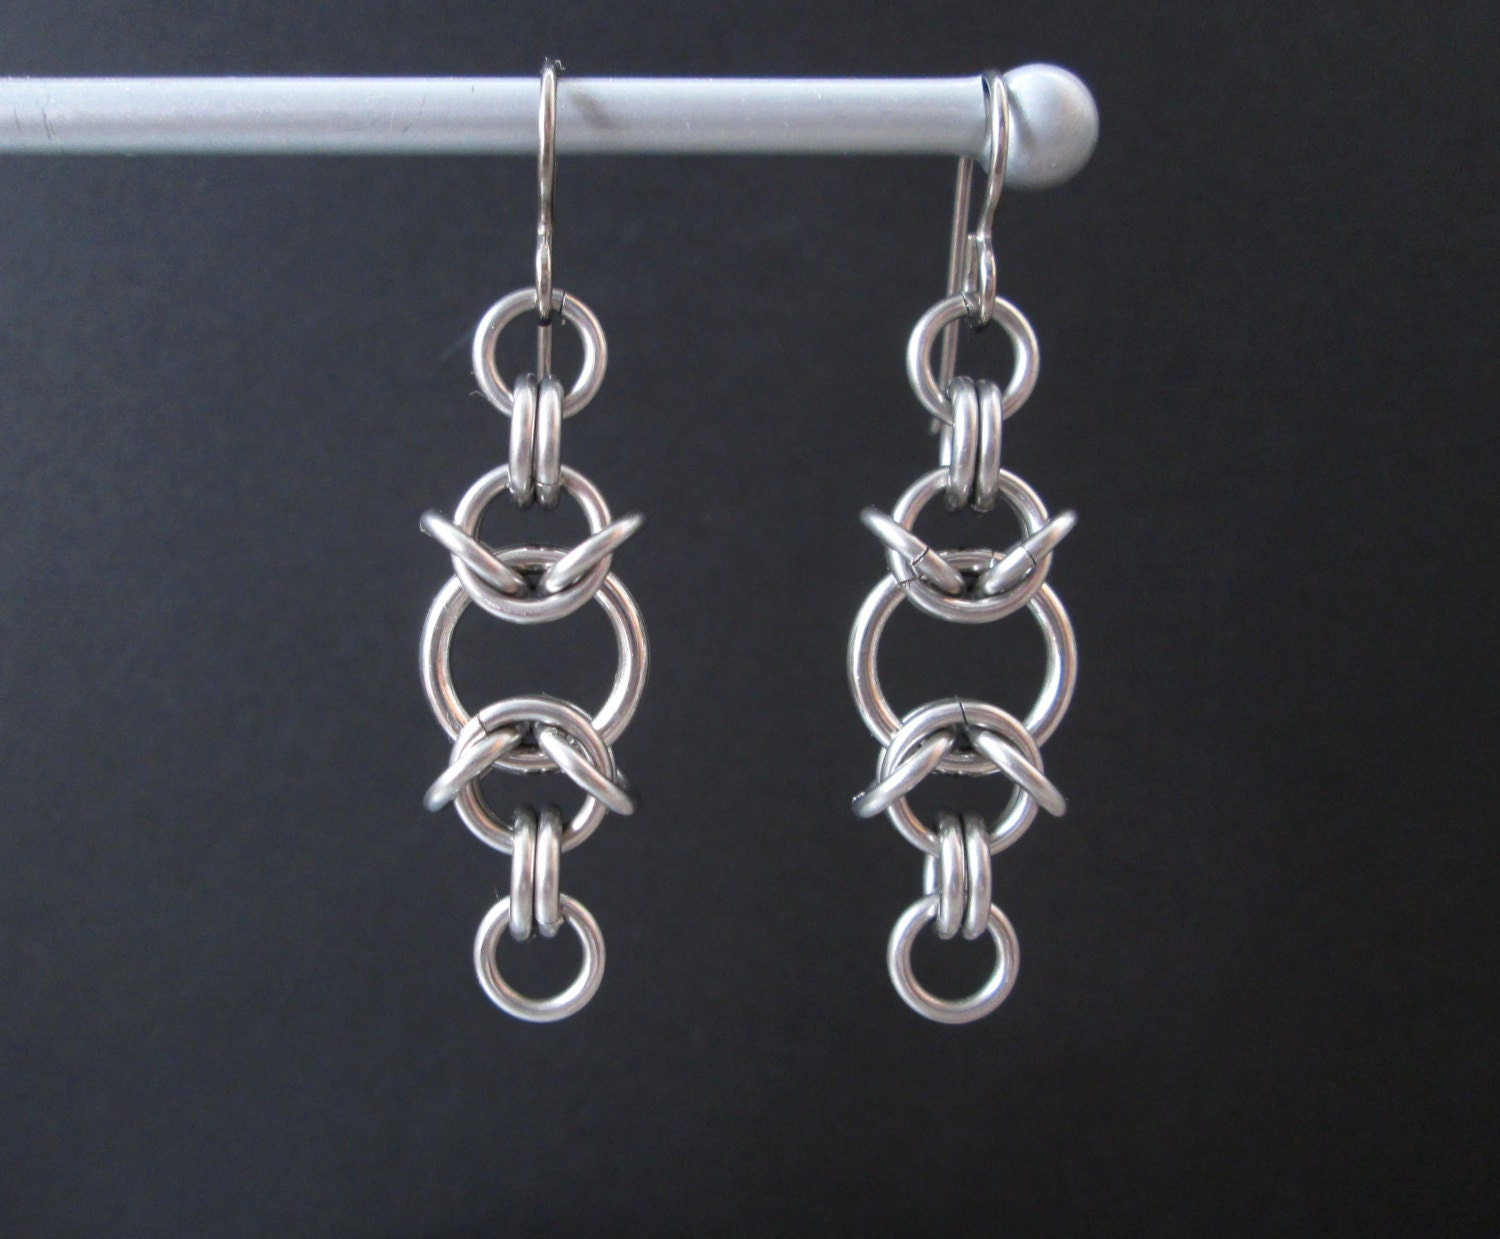 chainmaille earrings stainless steel earrings chain maille